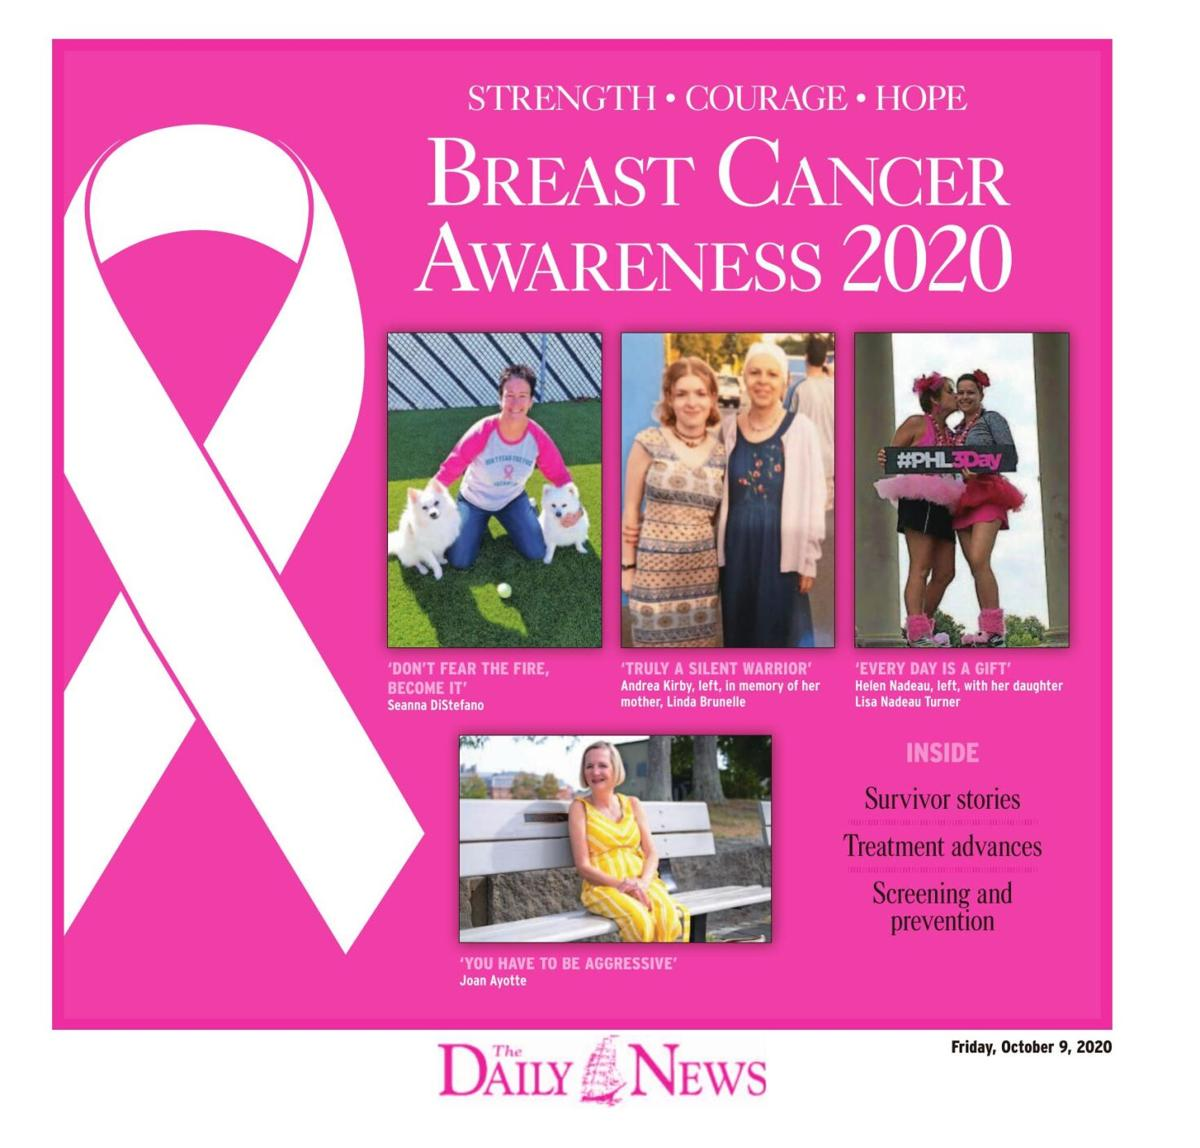 Breast Cancer Awareness 2020